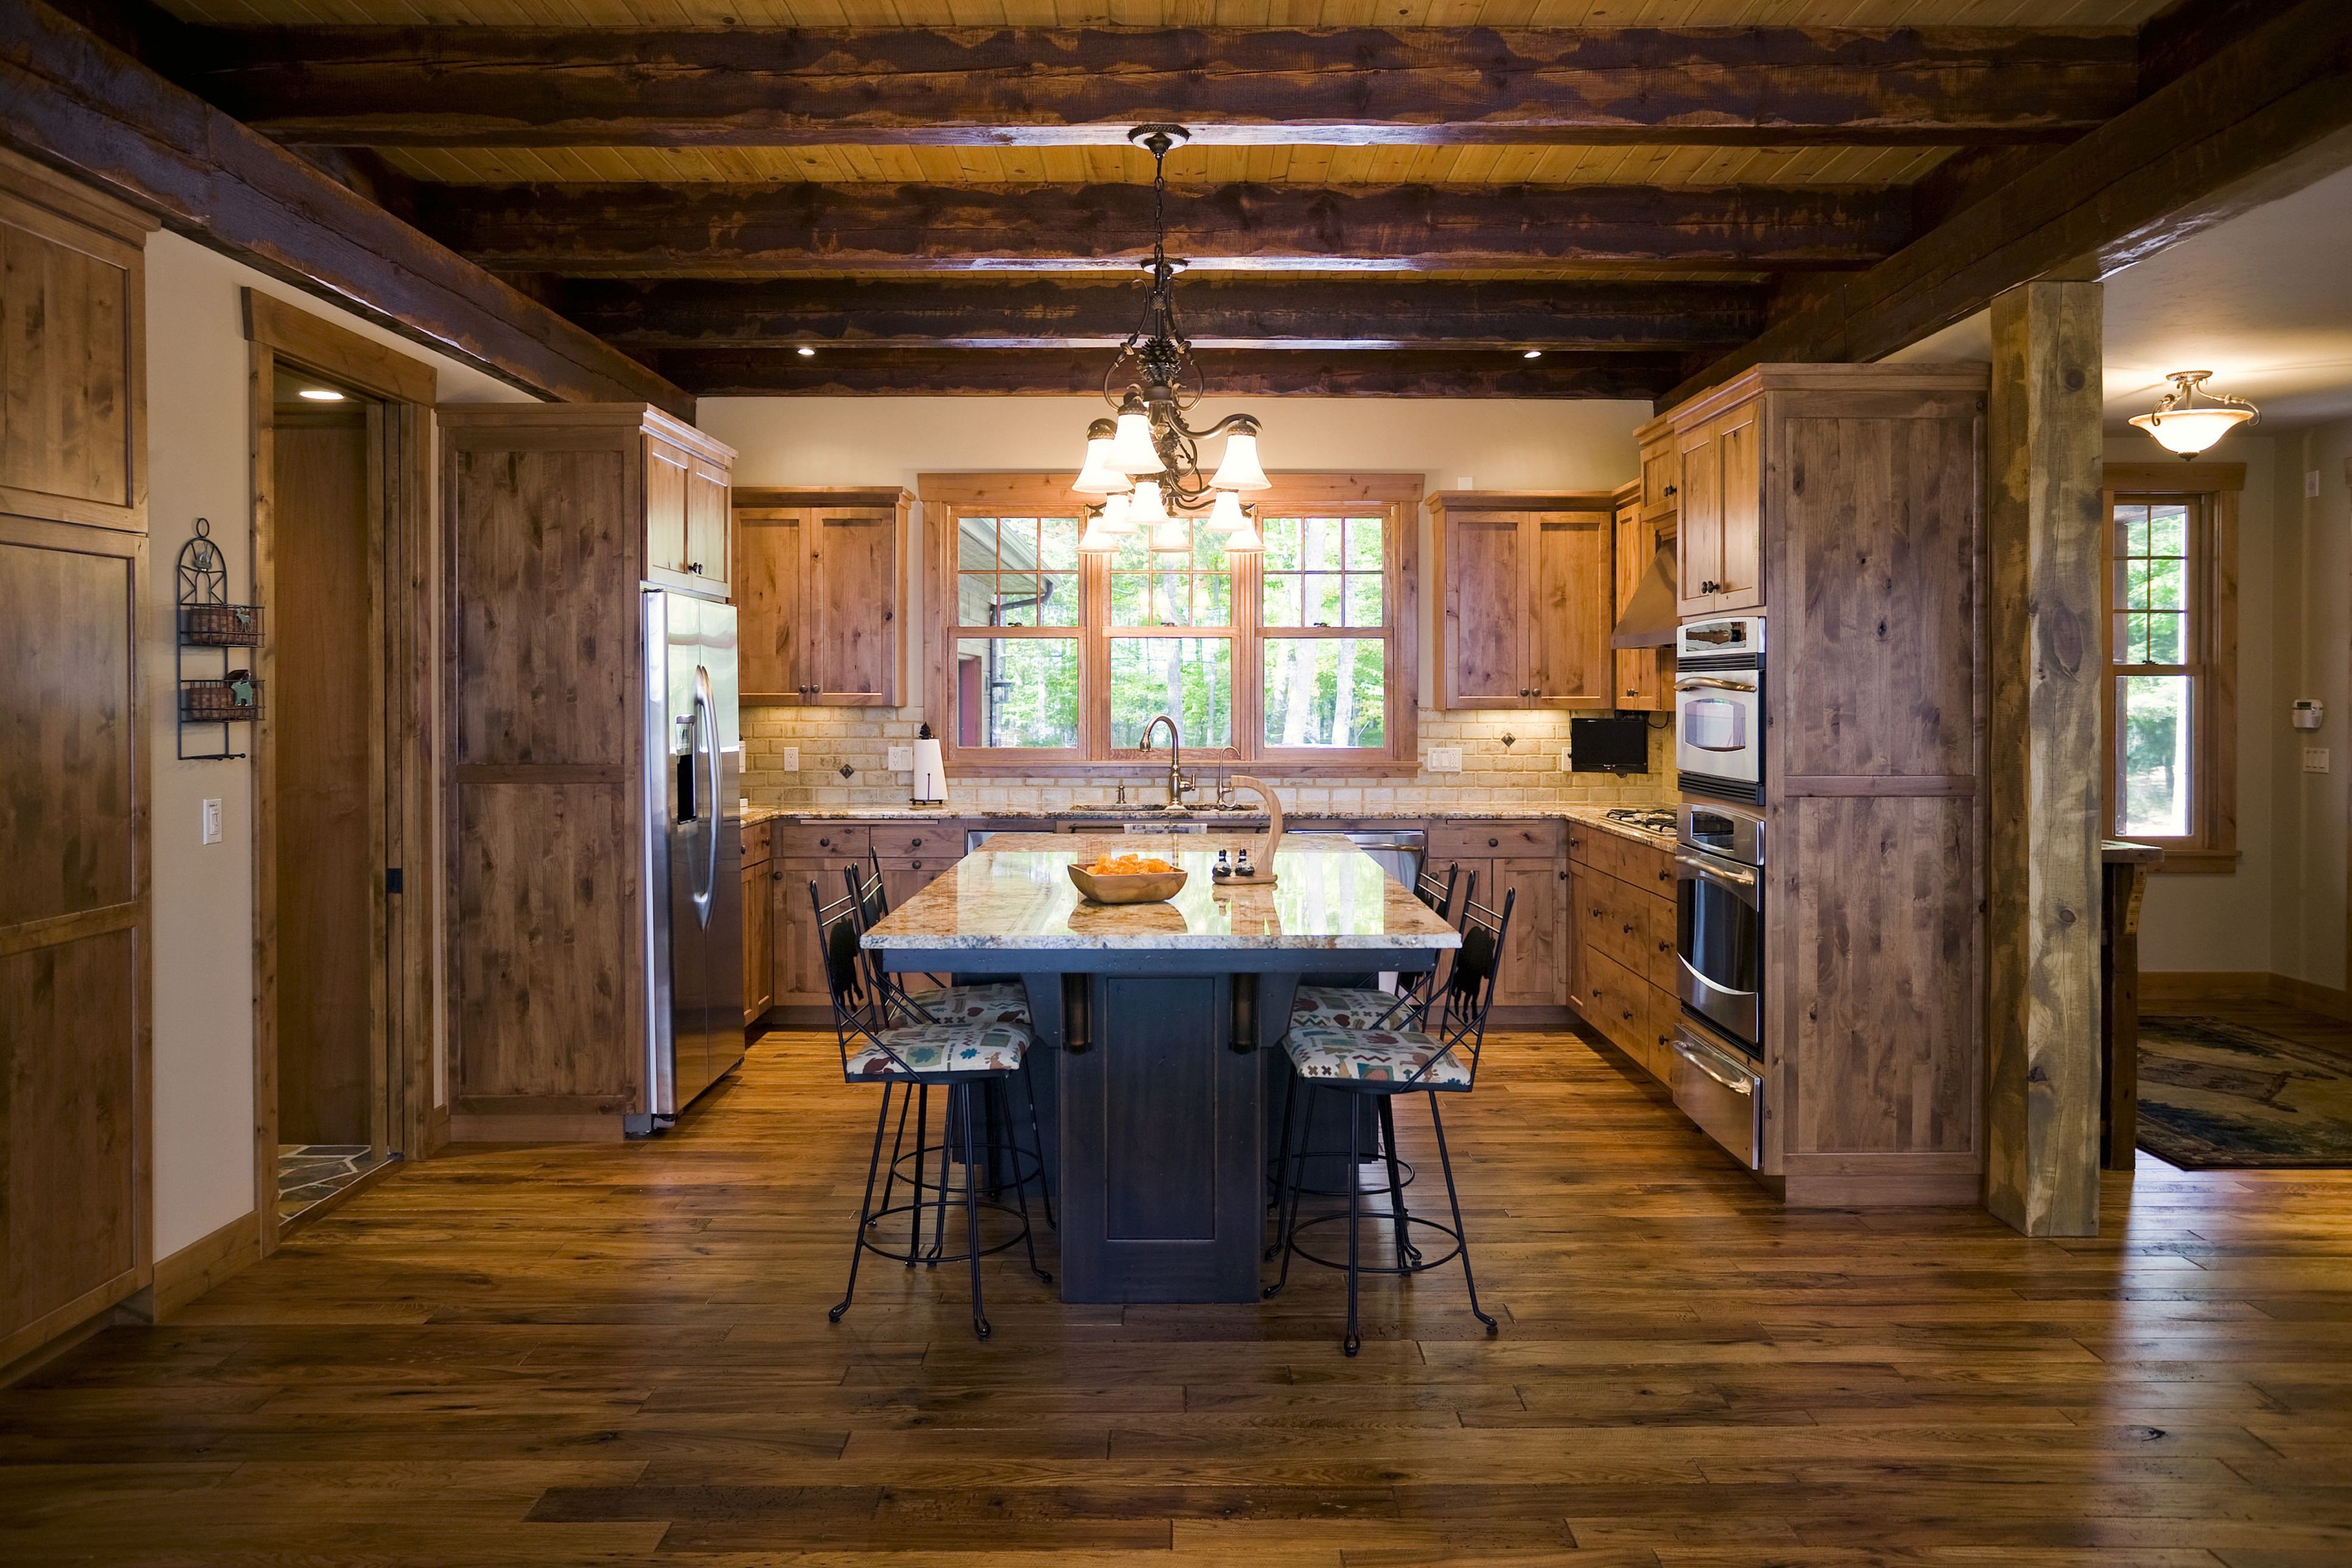 hardwood floor supply long island ny of country or rustic kitchen design ideas throughout kitchen with wood floor and open wood beam ceiling 88801427 image studios 56a4a1615f9b58b7d0d7e63f